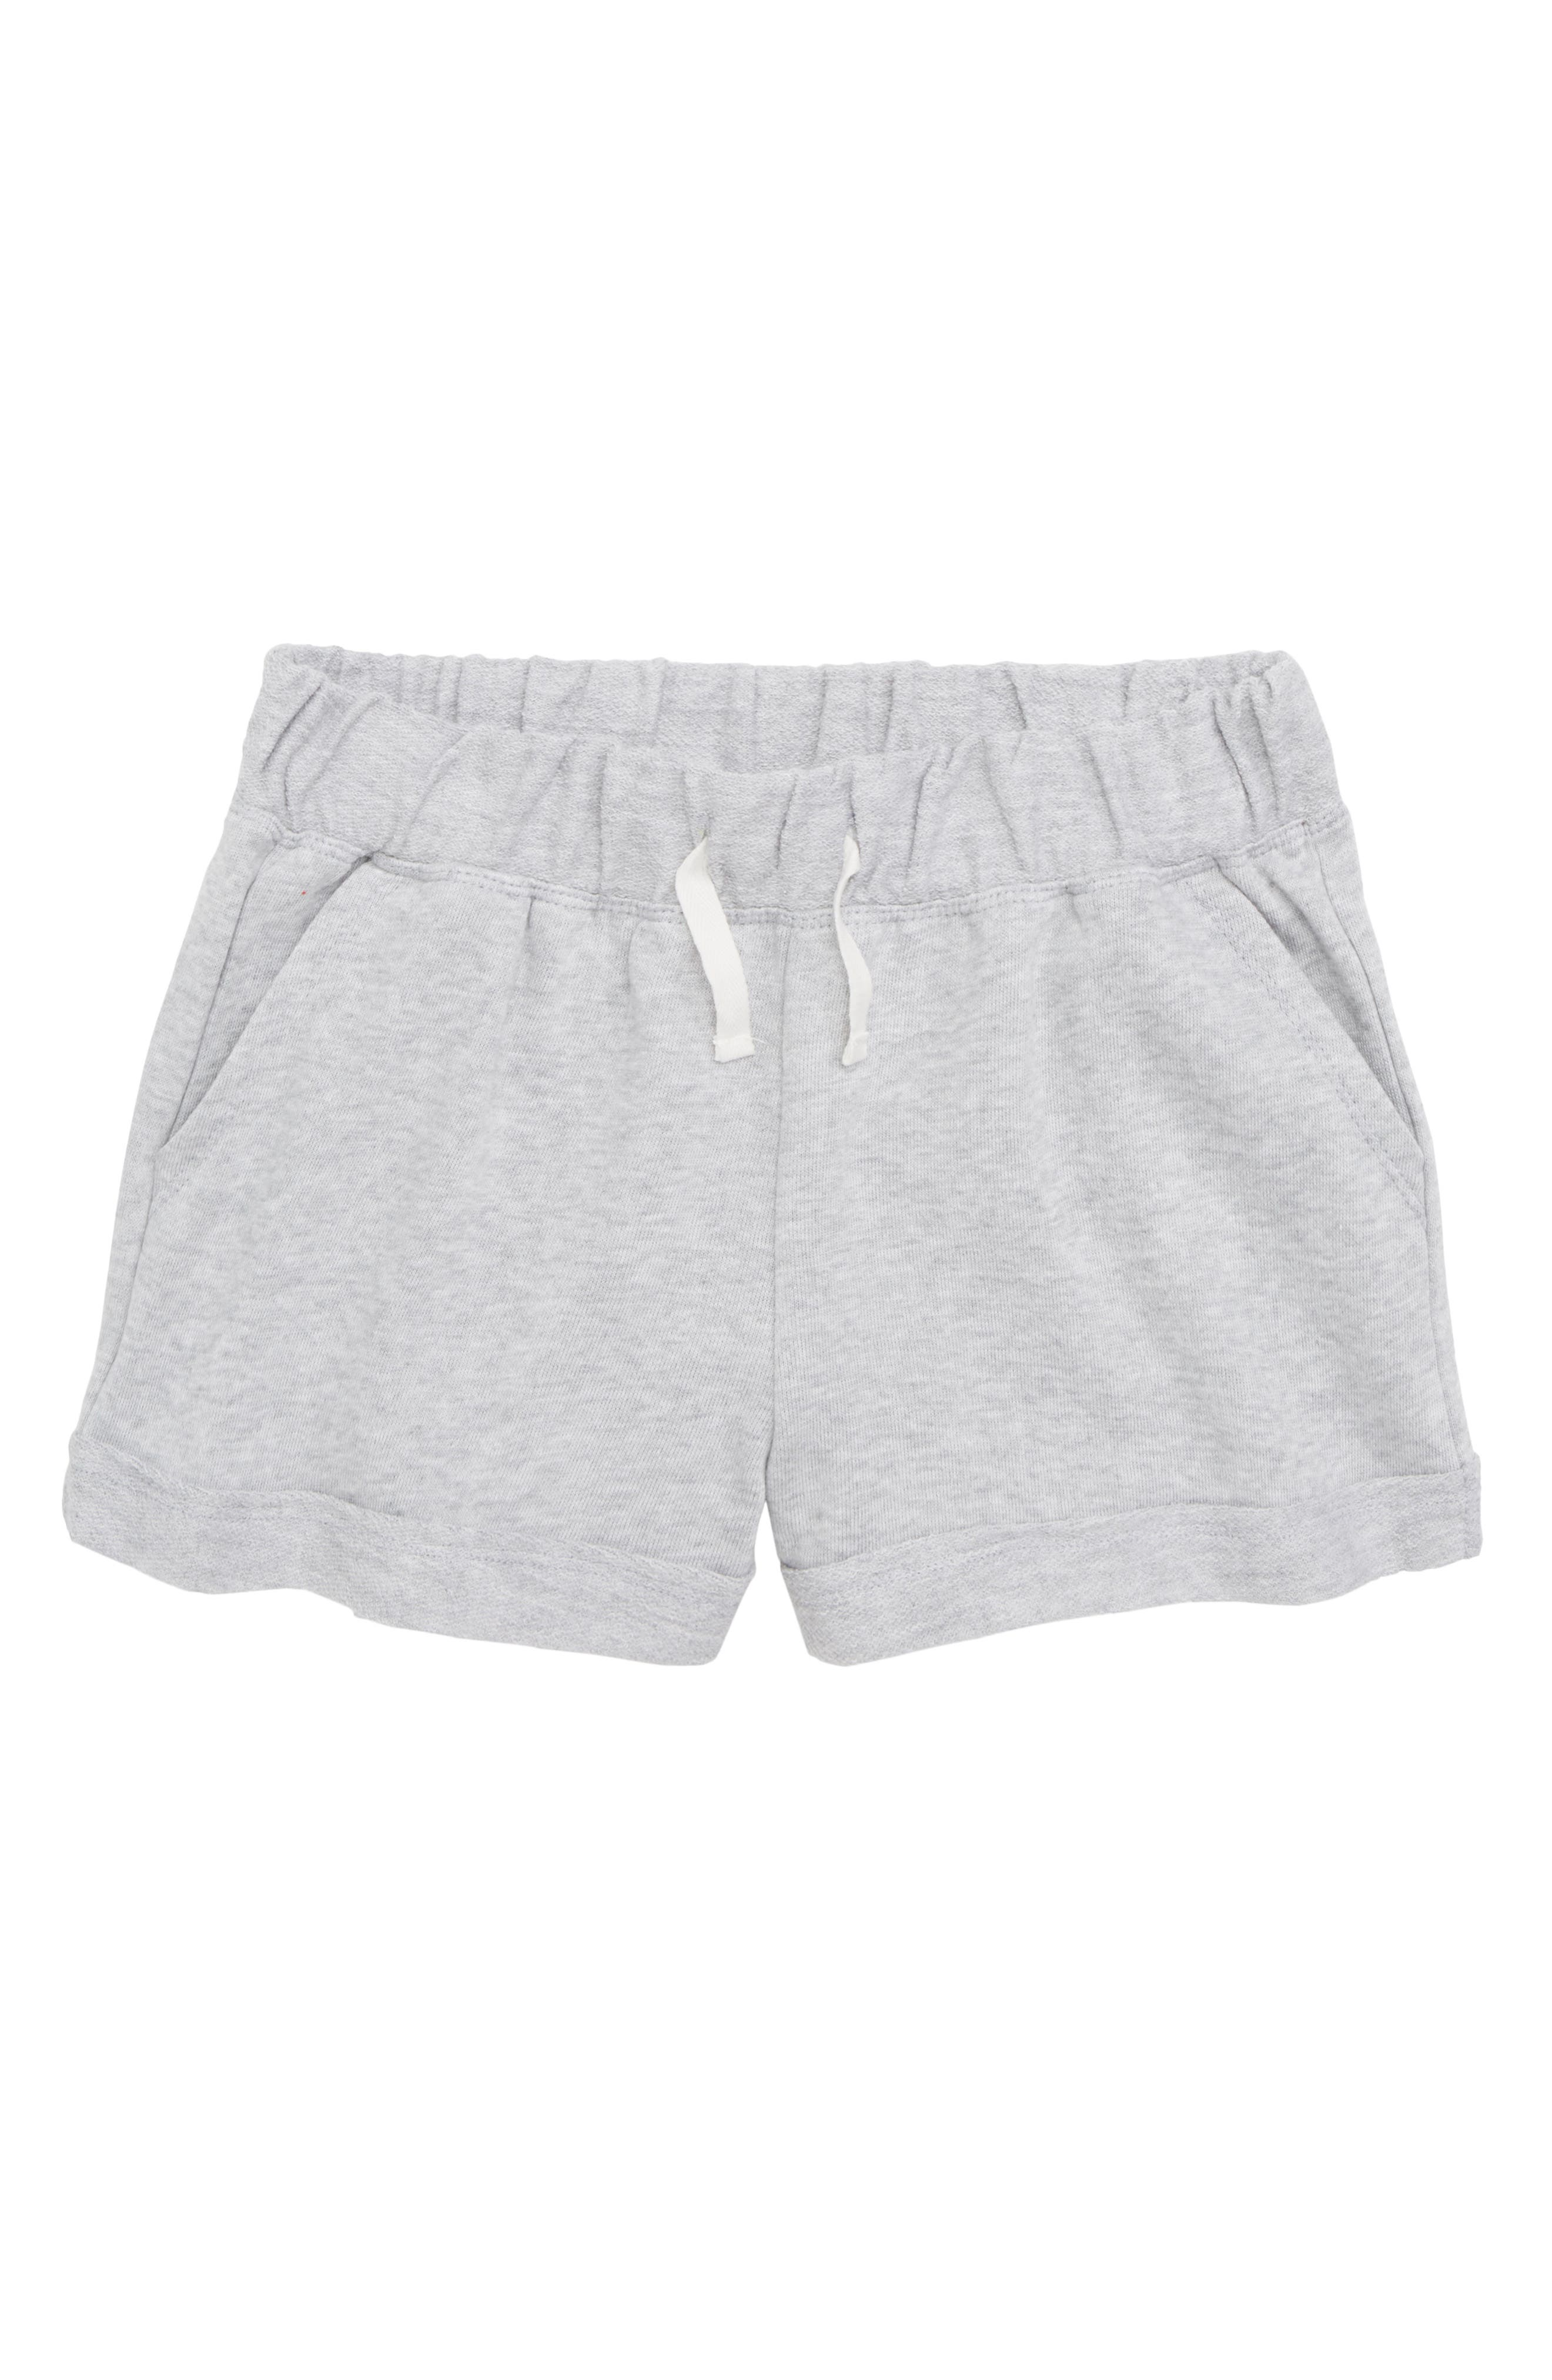 Cuff French Terry Shorts,                             Main thumbnail 1, color,                             Ice Grey Heather